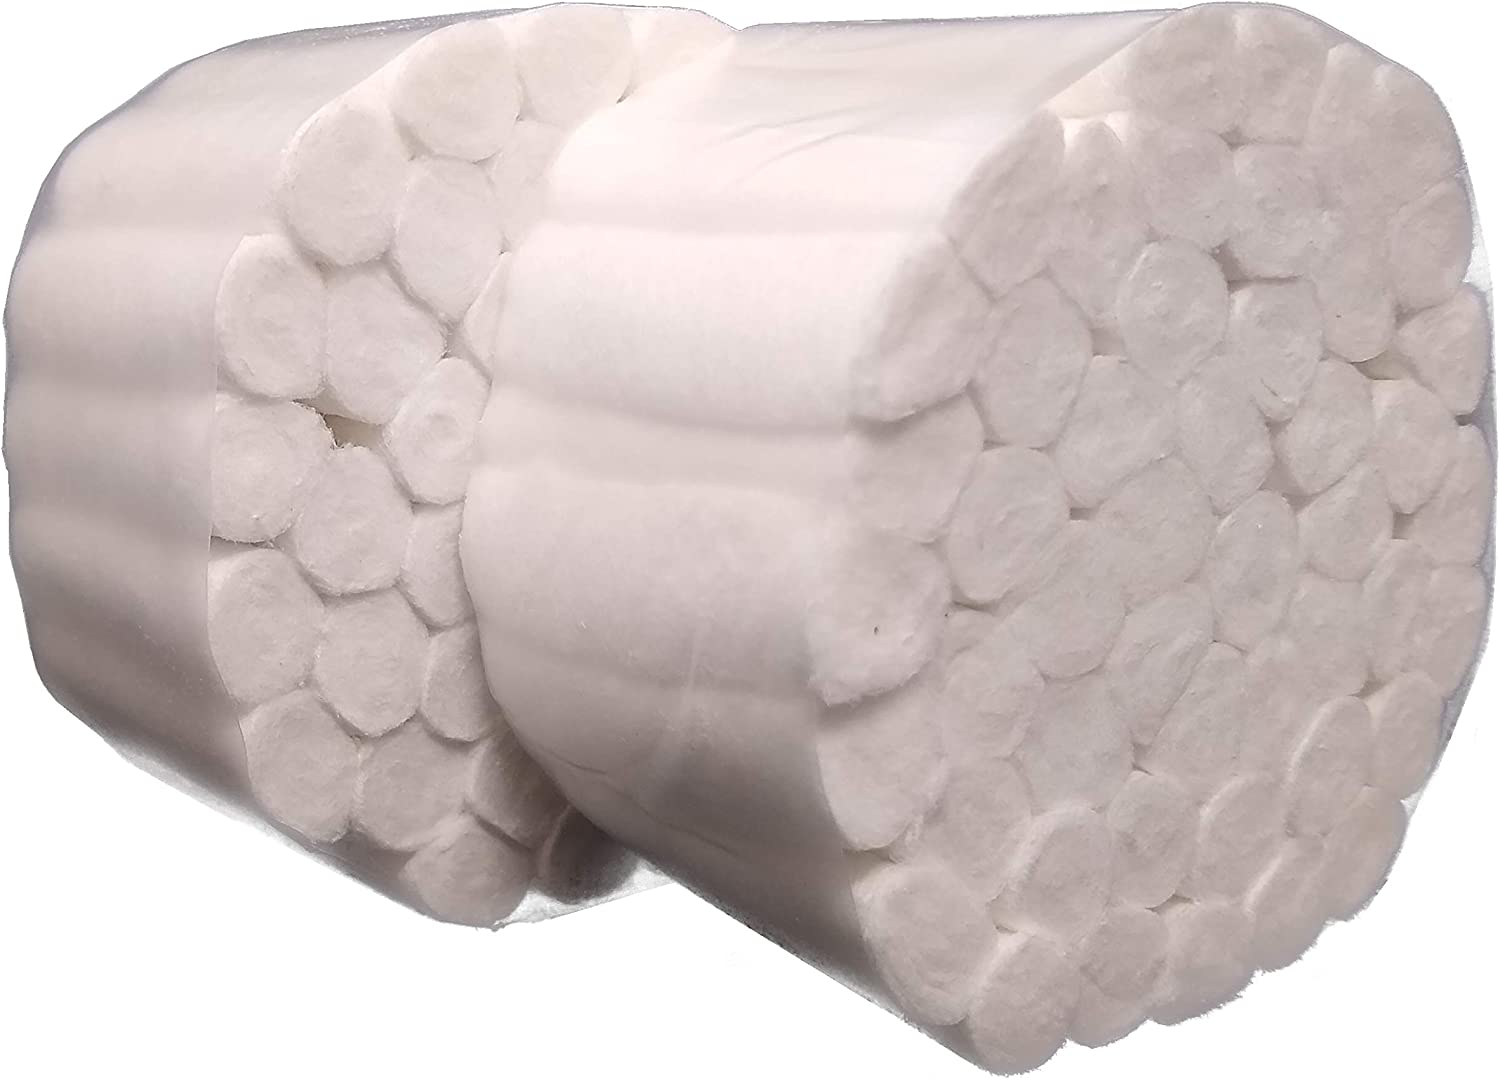 Dental Cotton Gauze Rolls Pack of 100 for Discount is also underway and Mouth Nosebleeds Max 45% OFF